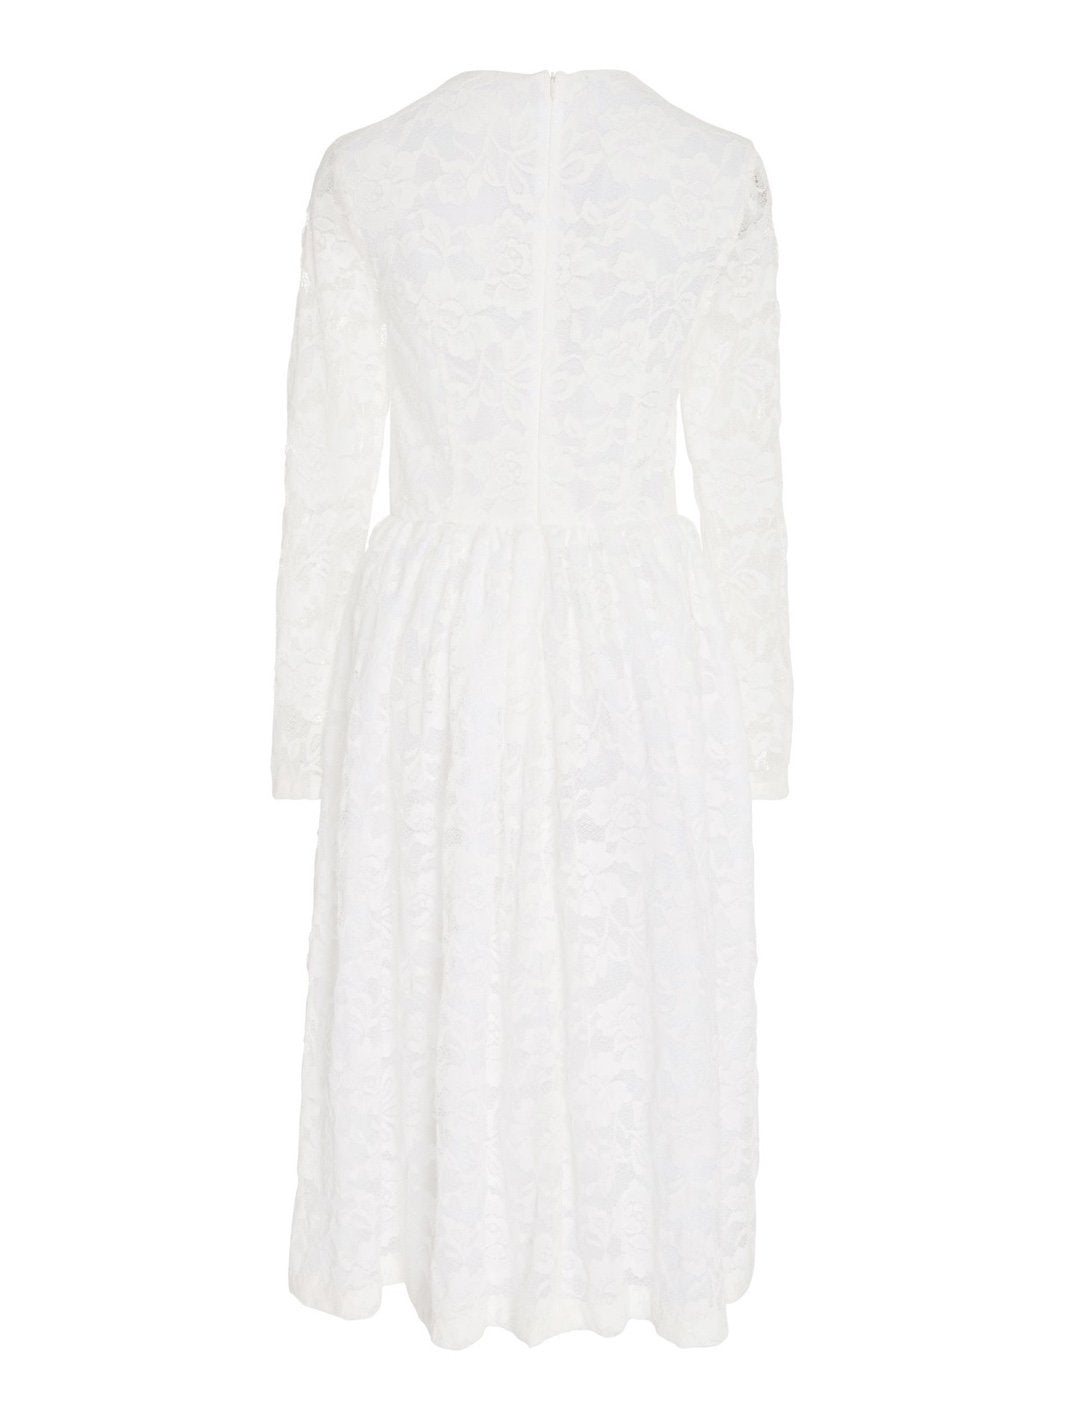 Evelyn White Lace Dress - The Bobby Boga